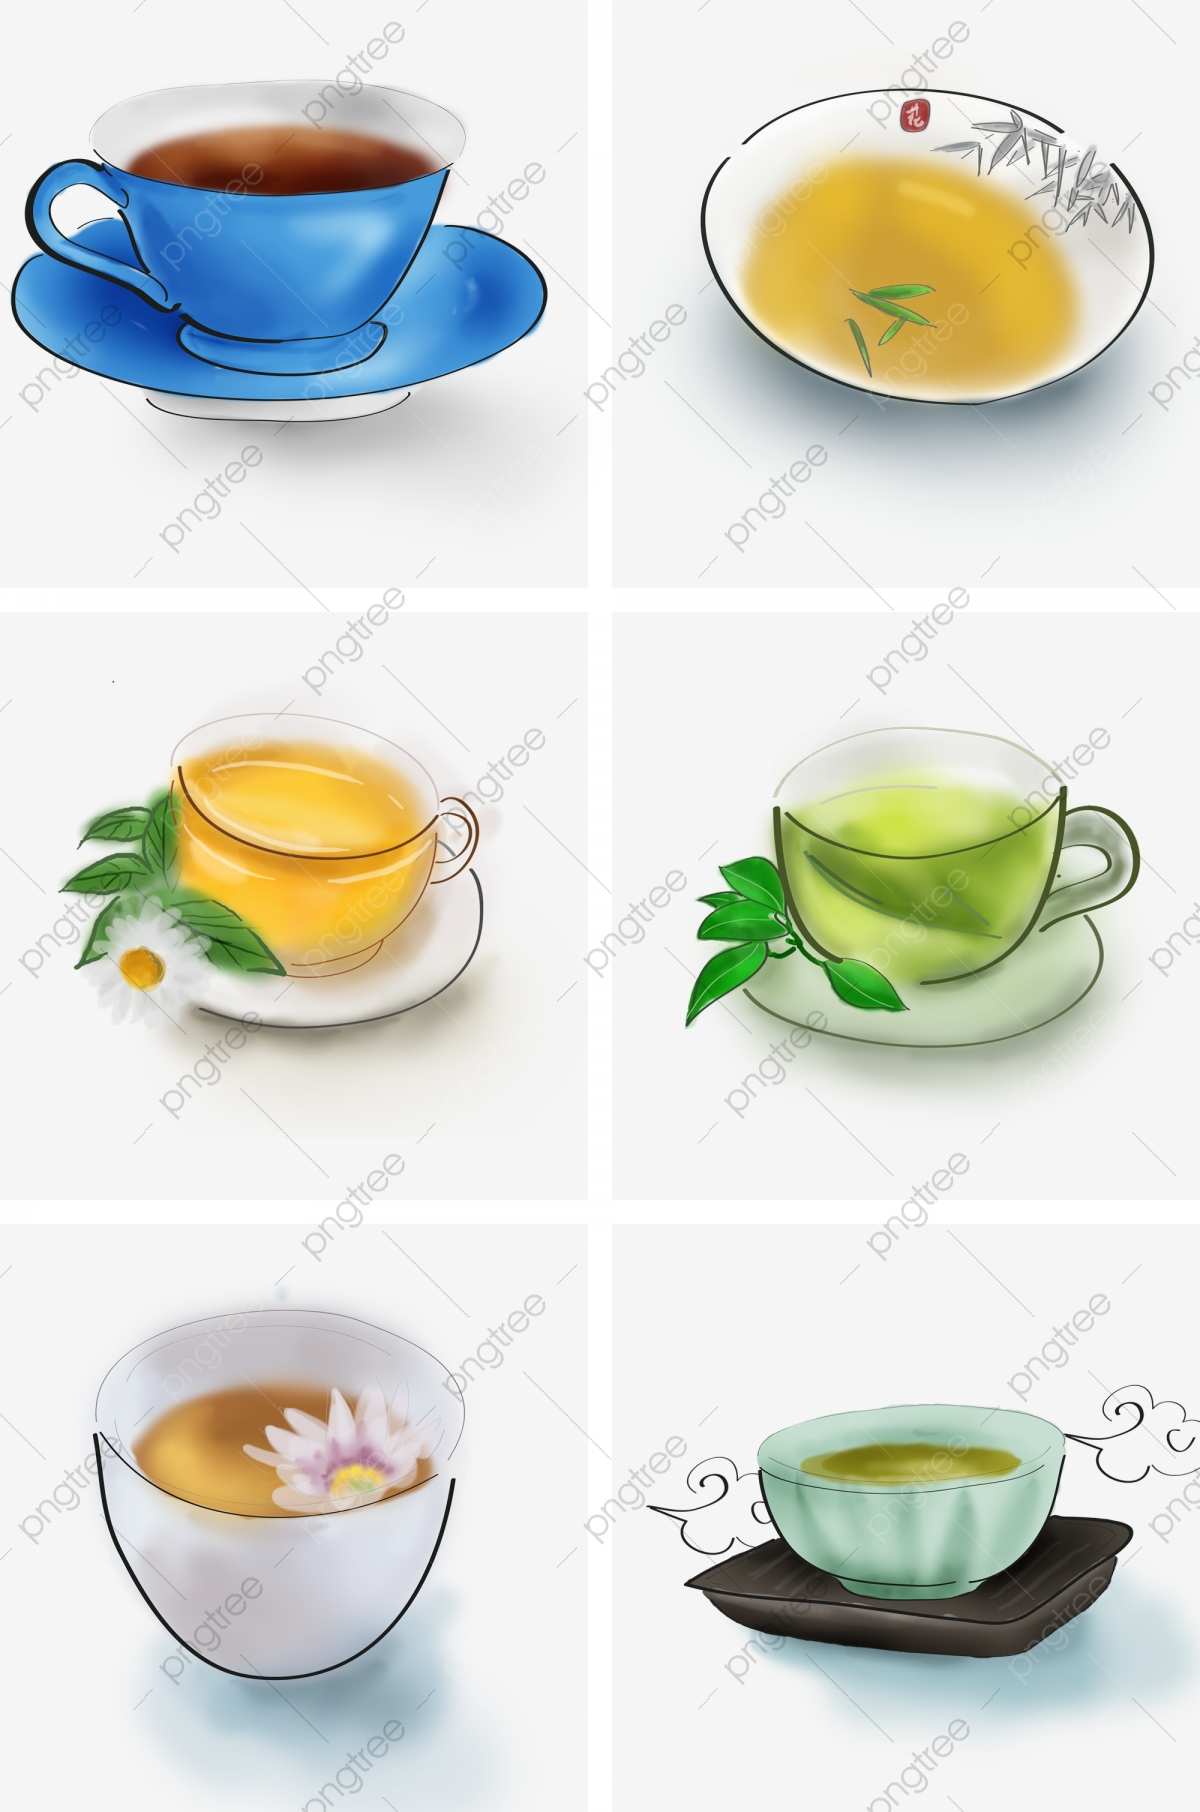 Green Tea Vector Material Download Tea Set Hot Tea Pattern Png Transparent Clipart Image And Psd File For Free Download